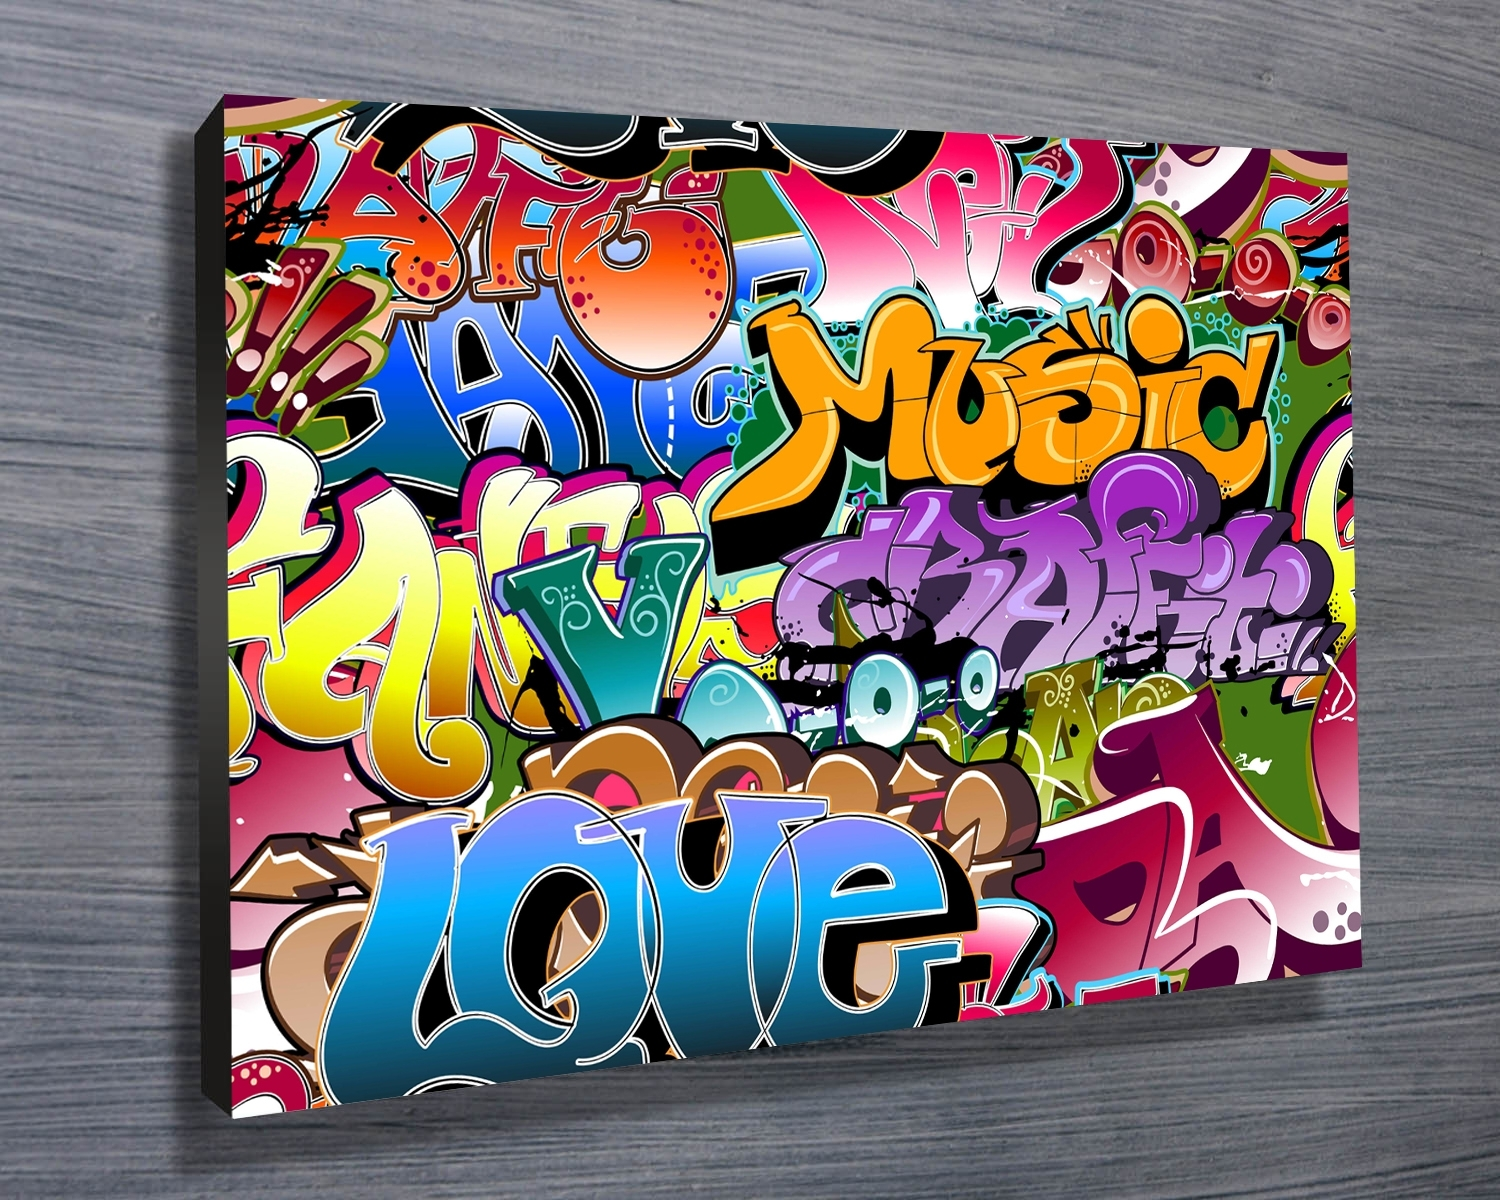 Graffiti Art Letters Beautiful Wall Art Ideas Design Beautiful For Latest Abstract Graffiti Wall Art (View 16 of 20)